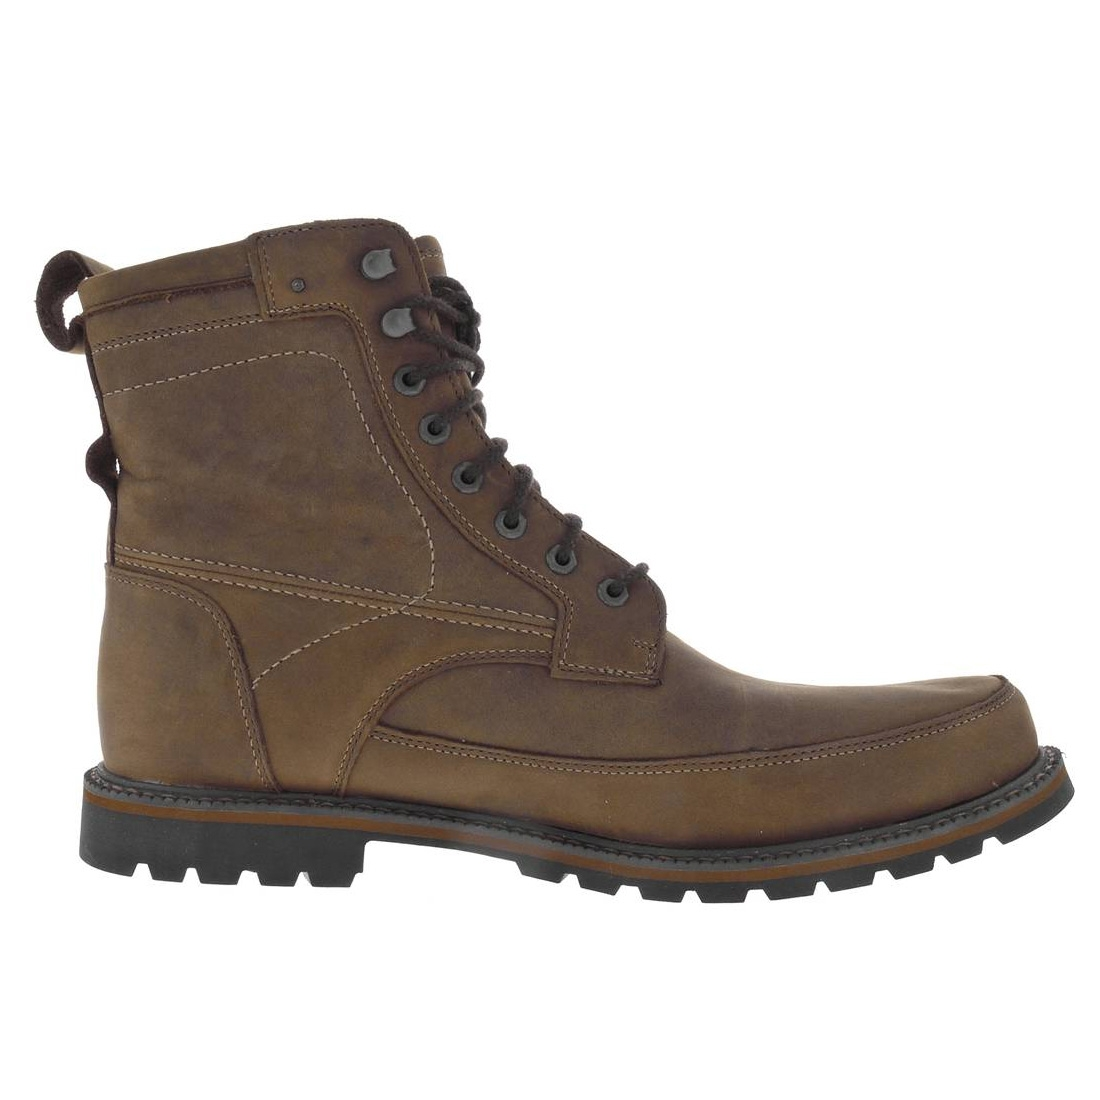 f26c9287fcd6 Image of Timberland Earthkeepers Chestnut Ridge 6 Inch Dark Brown Oiled  Casual Boot (Men s)